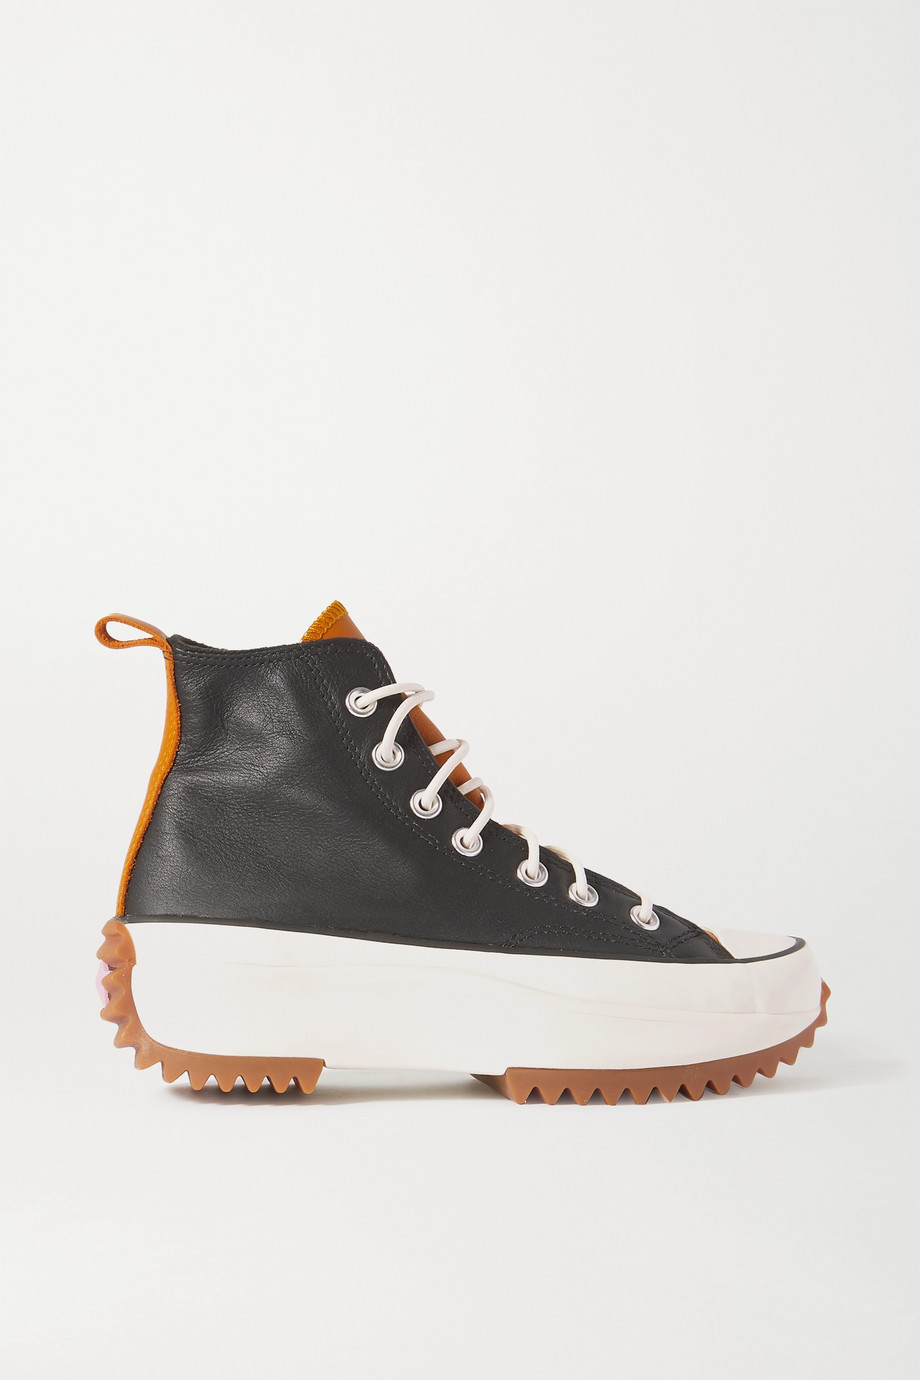 Converse Run Star Hike High-Top-Sneakers aus Leder mit Plateau